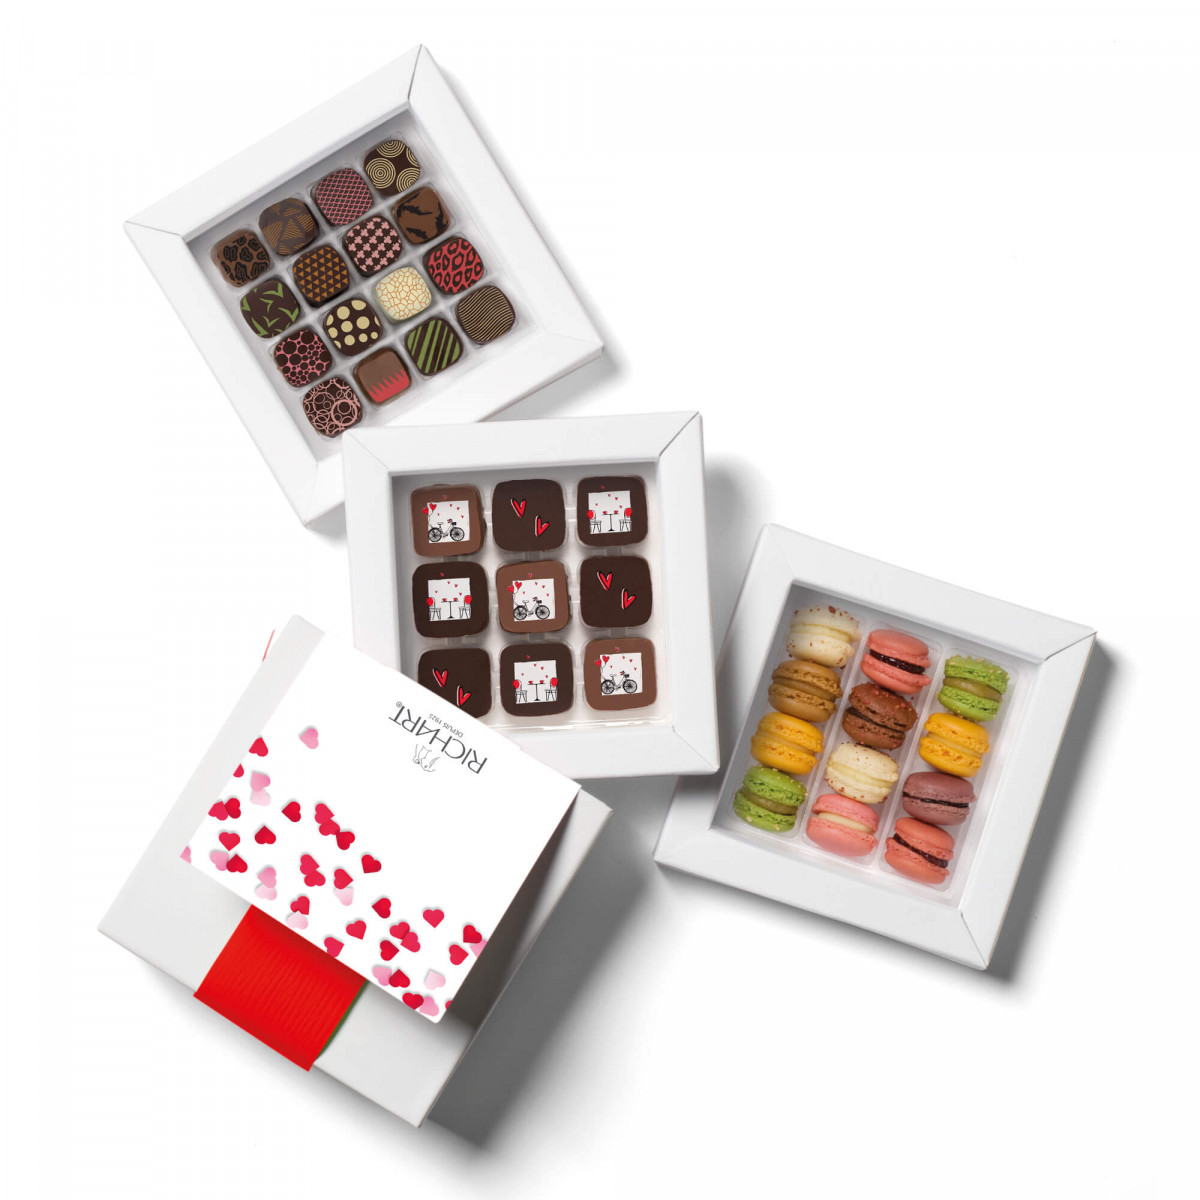 RICHART Chocolates - Be-Bop Box with 9 Valentine's Day filled chocolates, 12 French macarons and 16 Petits RICHART chocolates